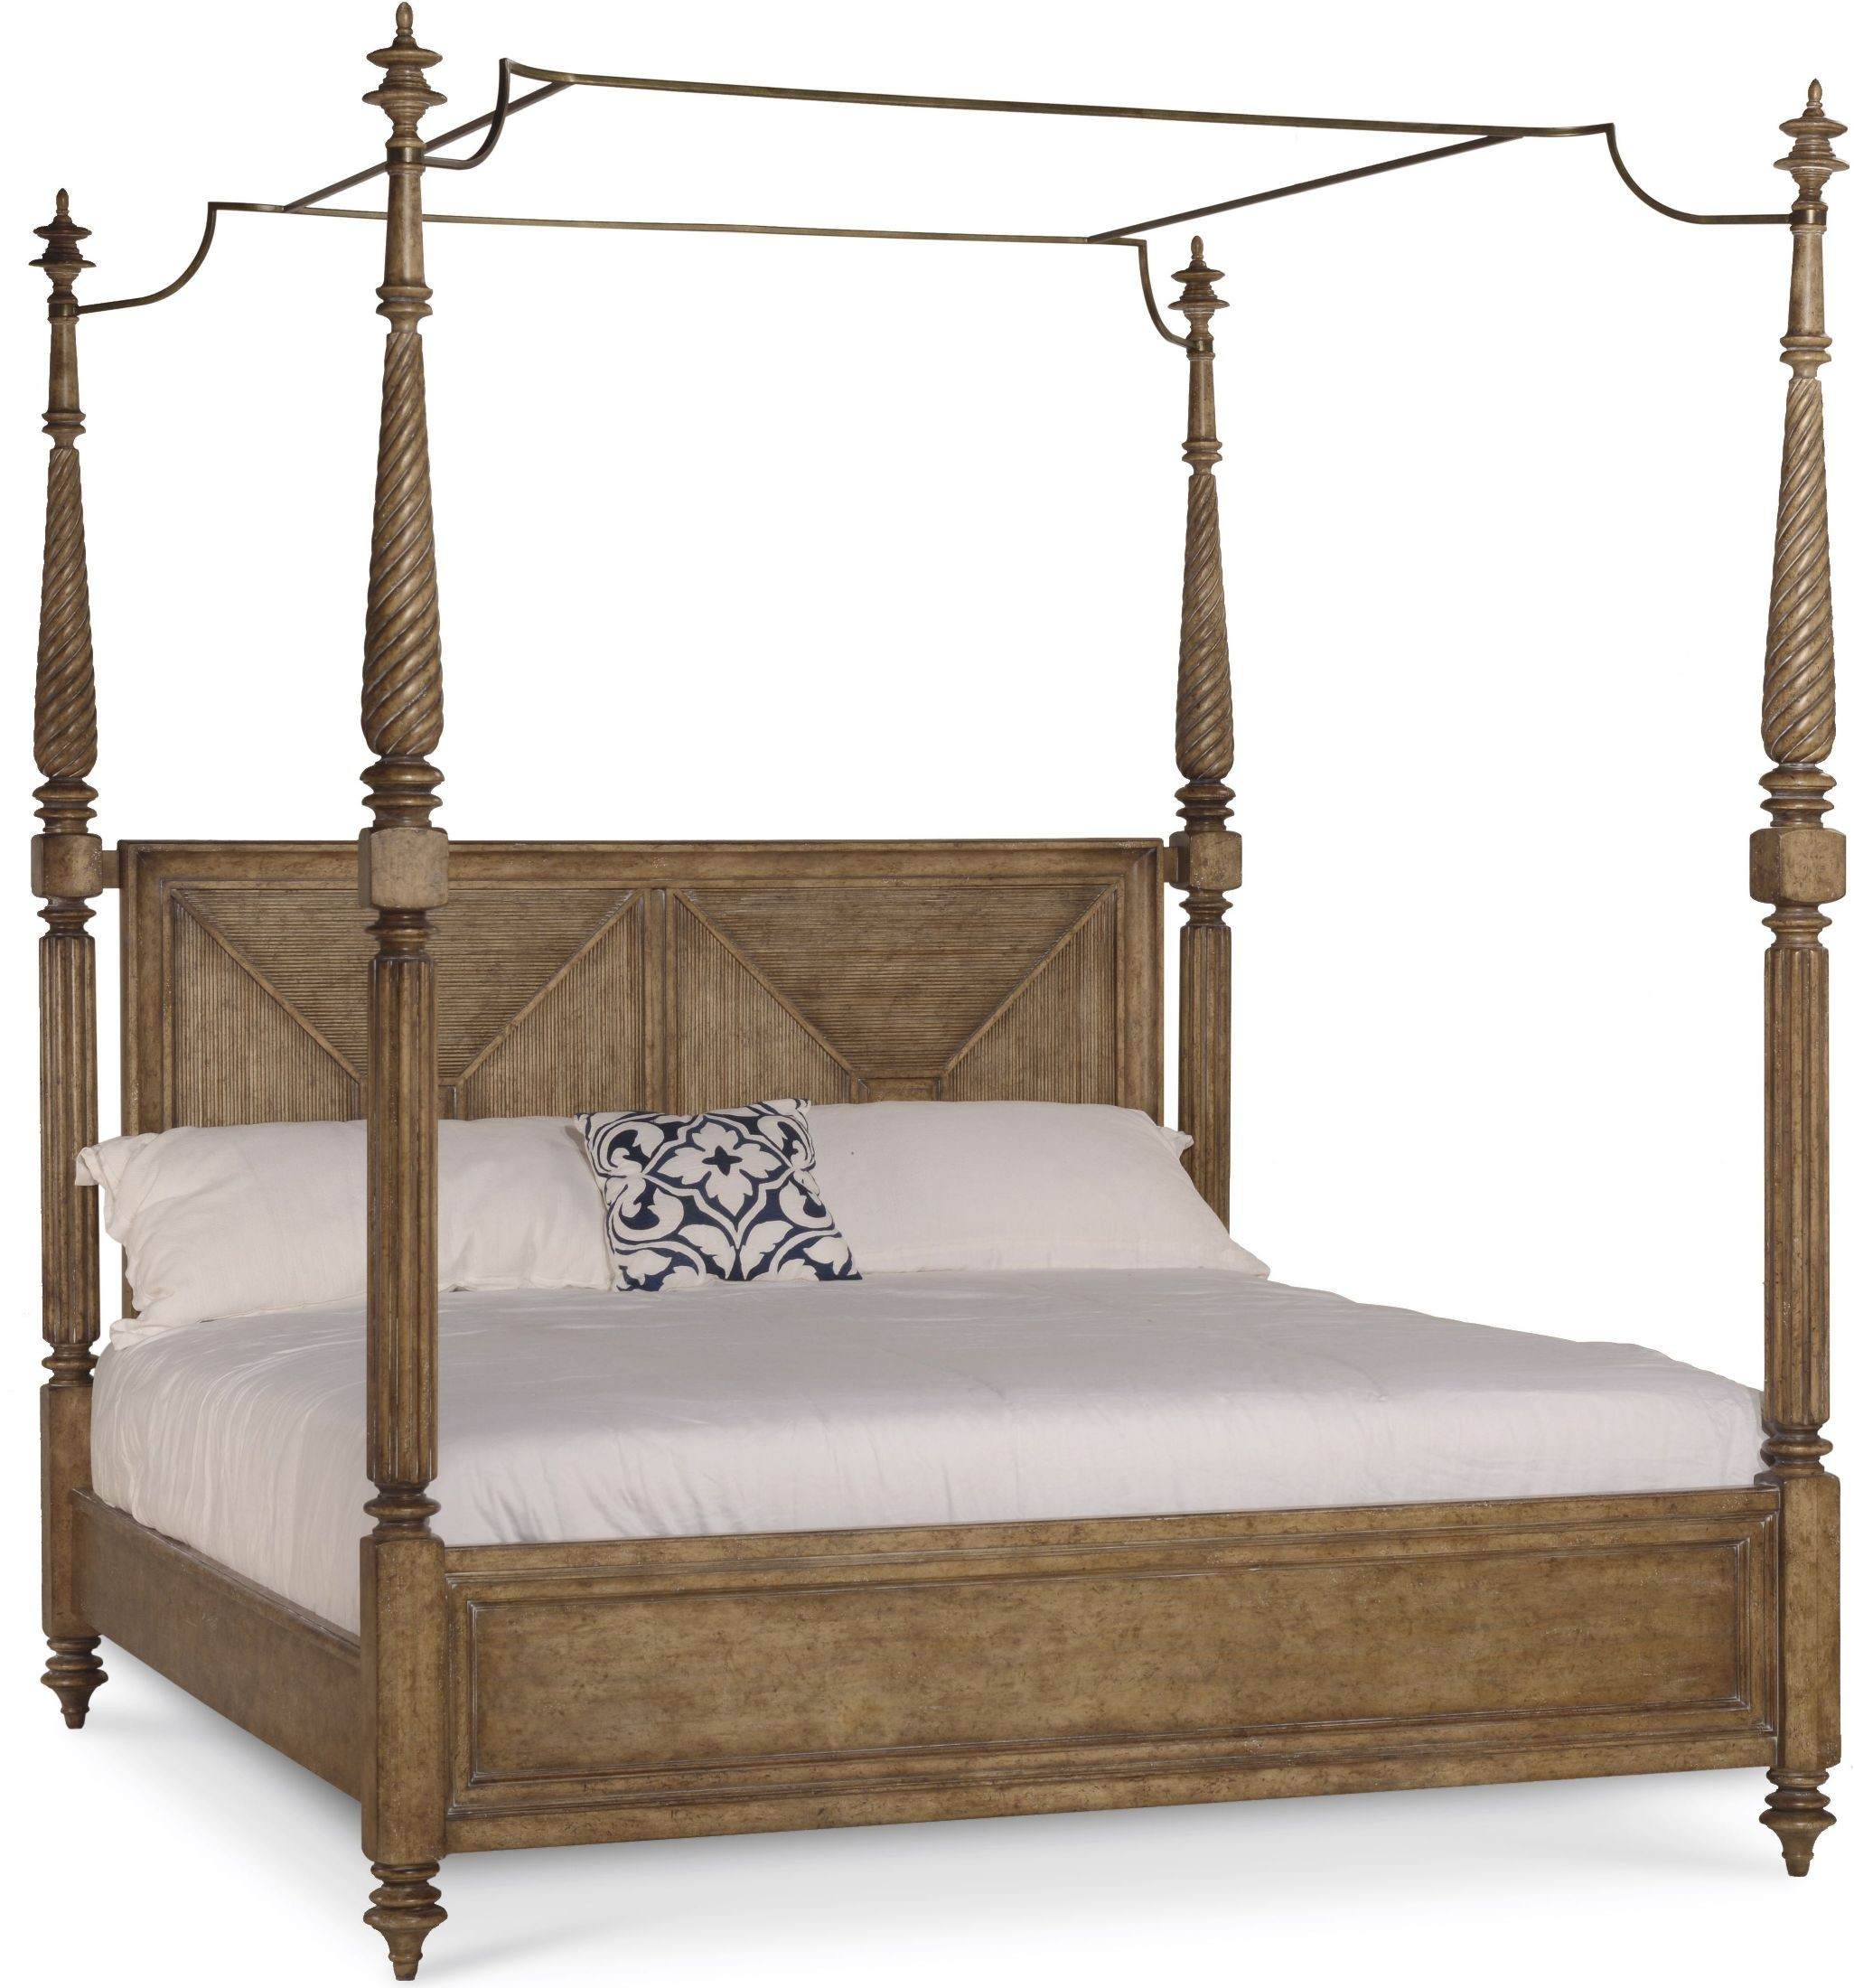 pavilion brown queen poster bed with canopy and posts from